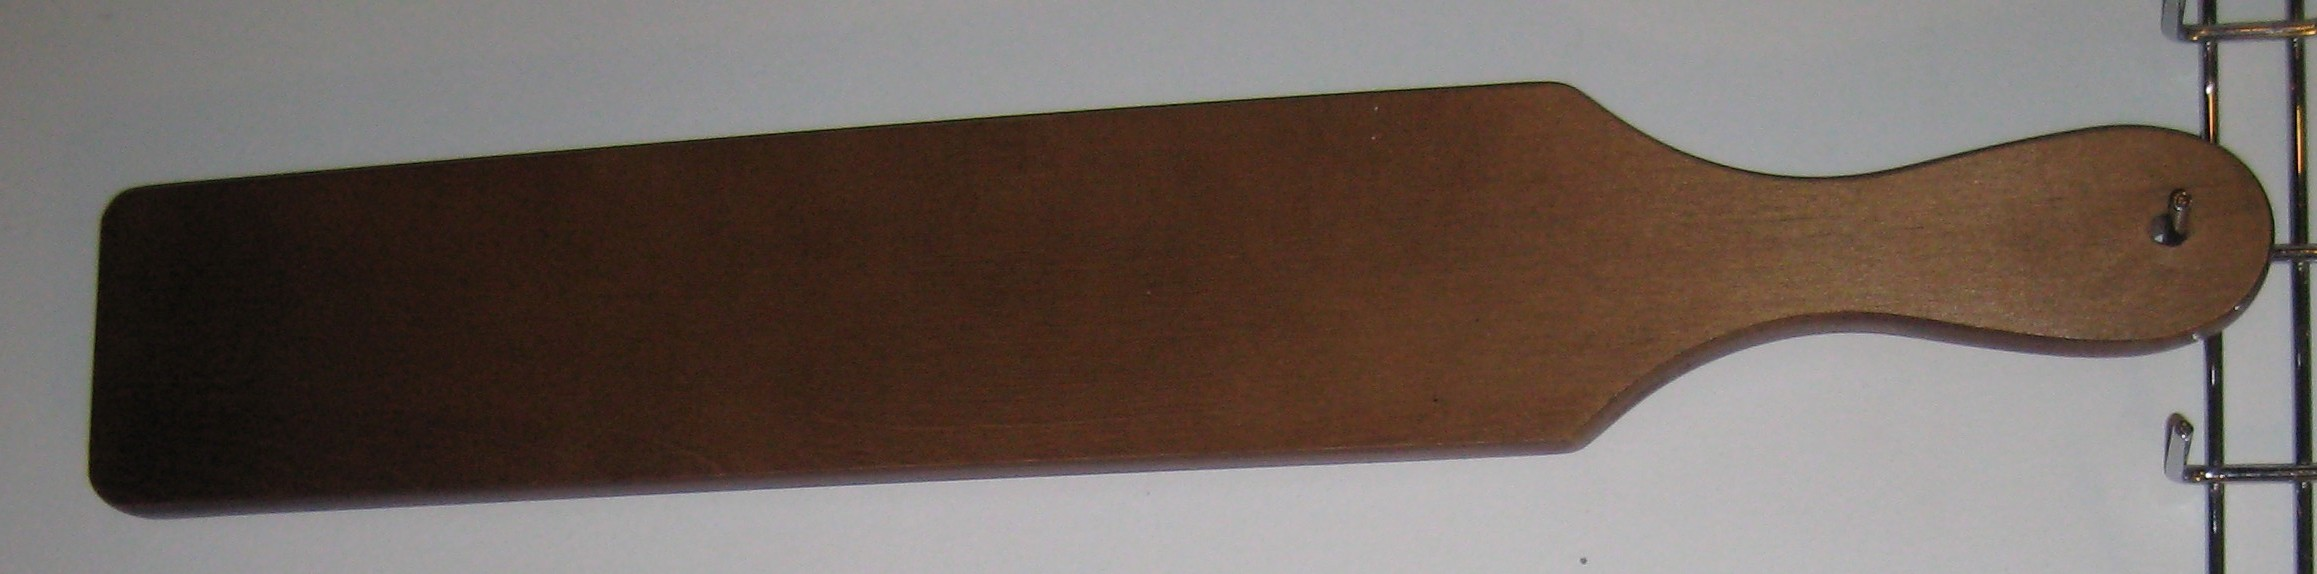 Paddle,Solid-Wood_Heavy-Punishment-Paddle, horiz.